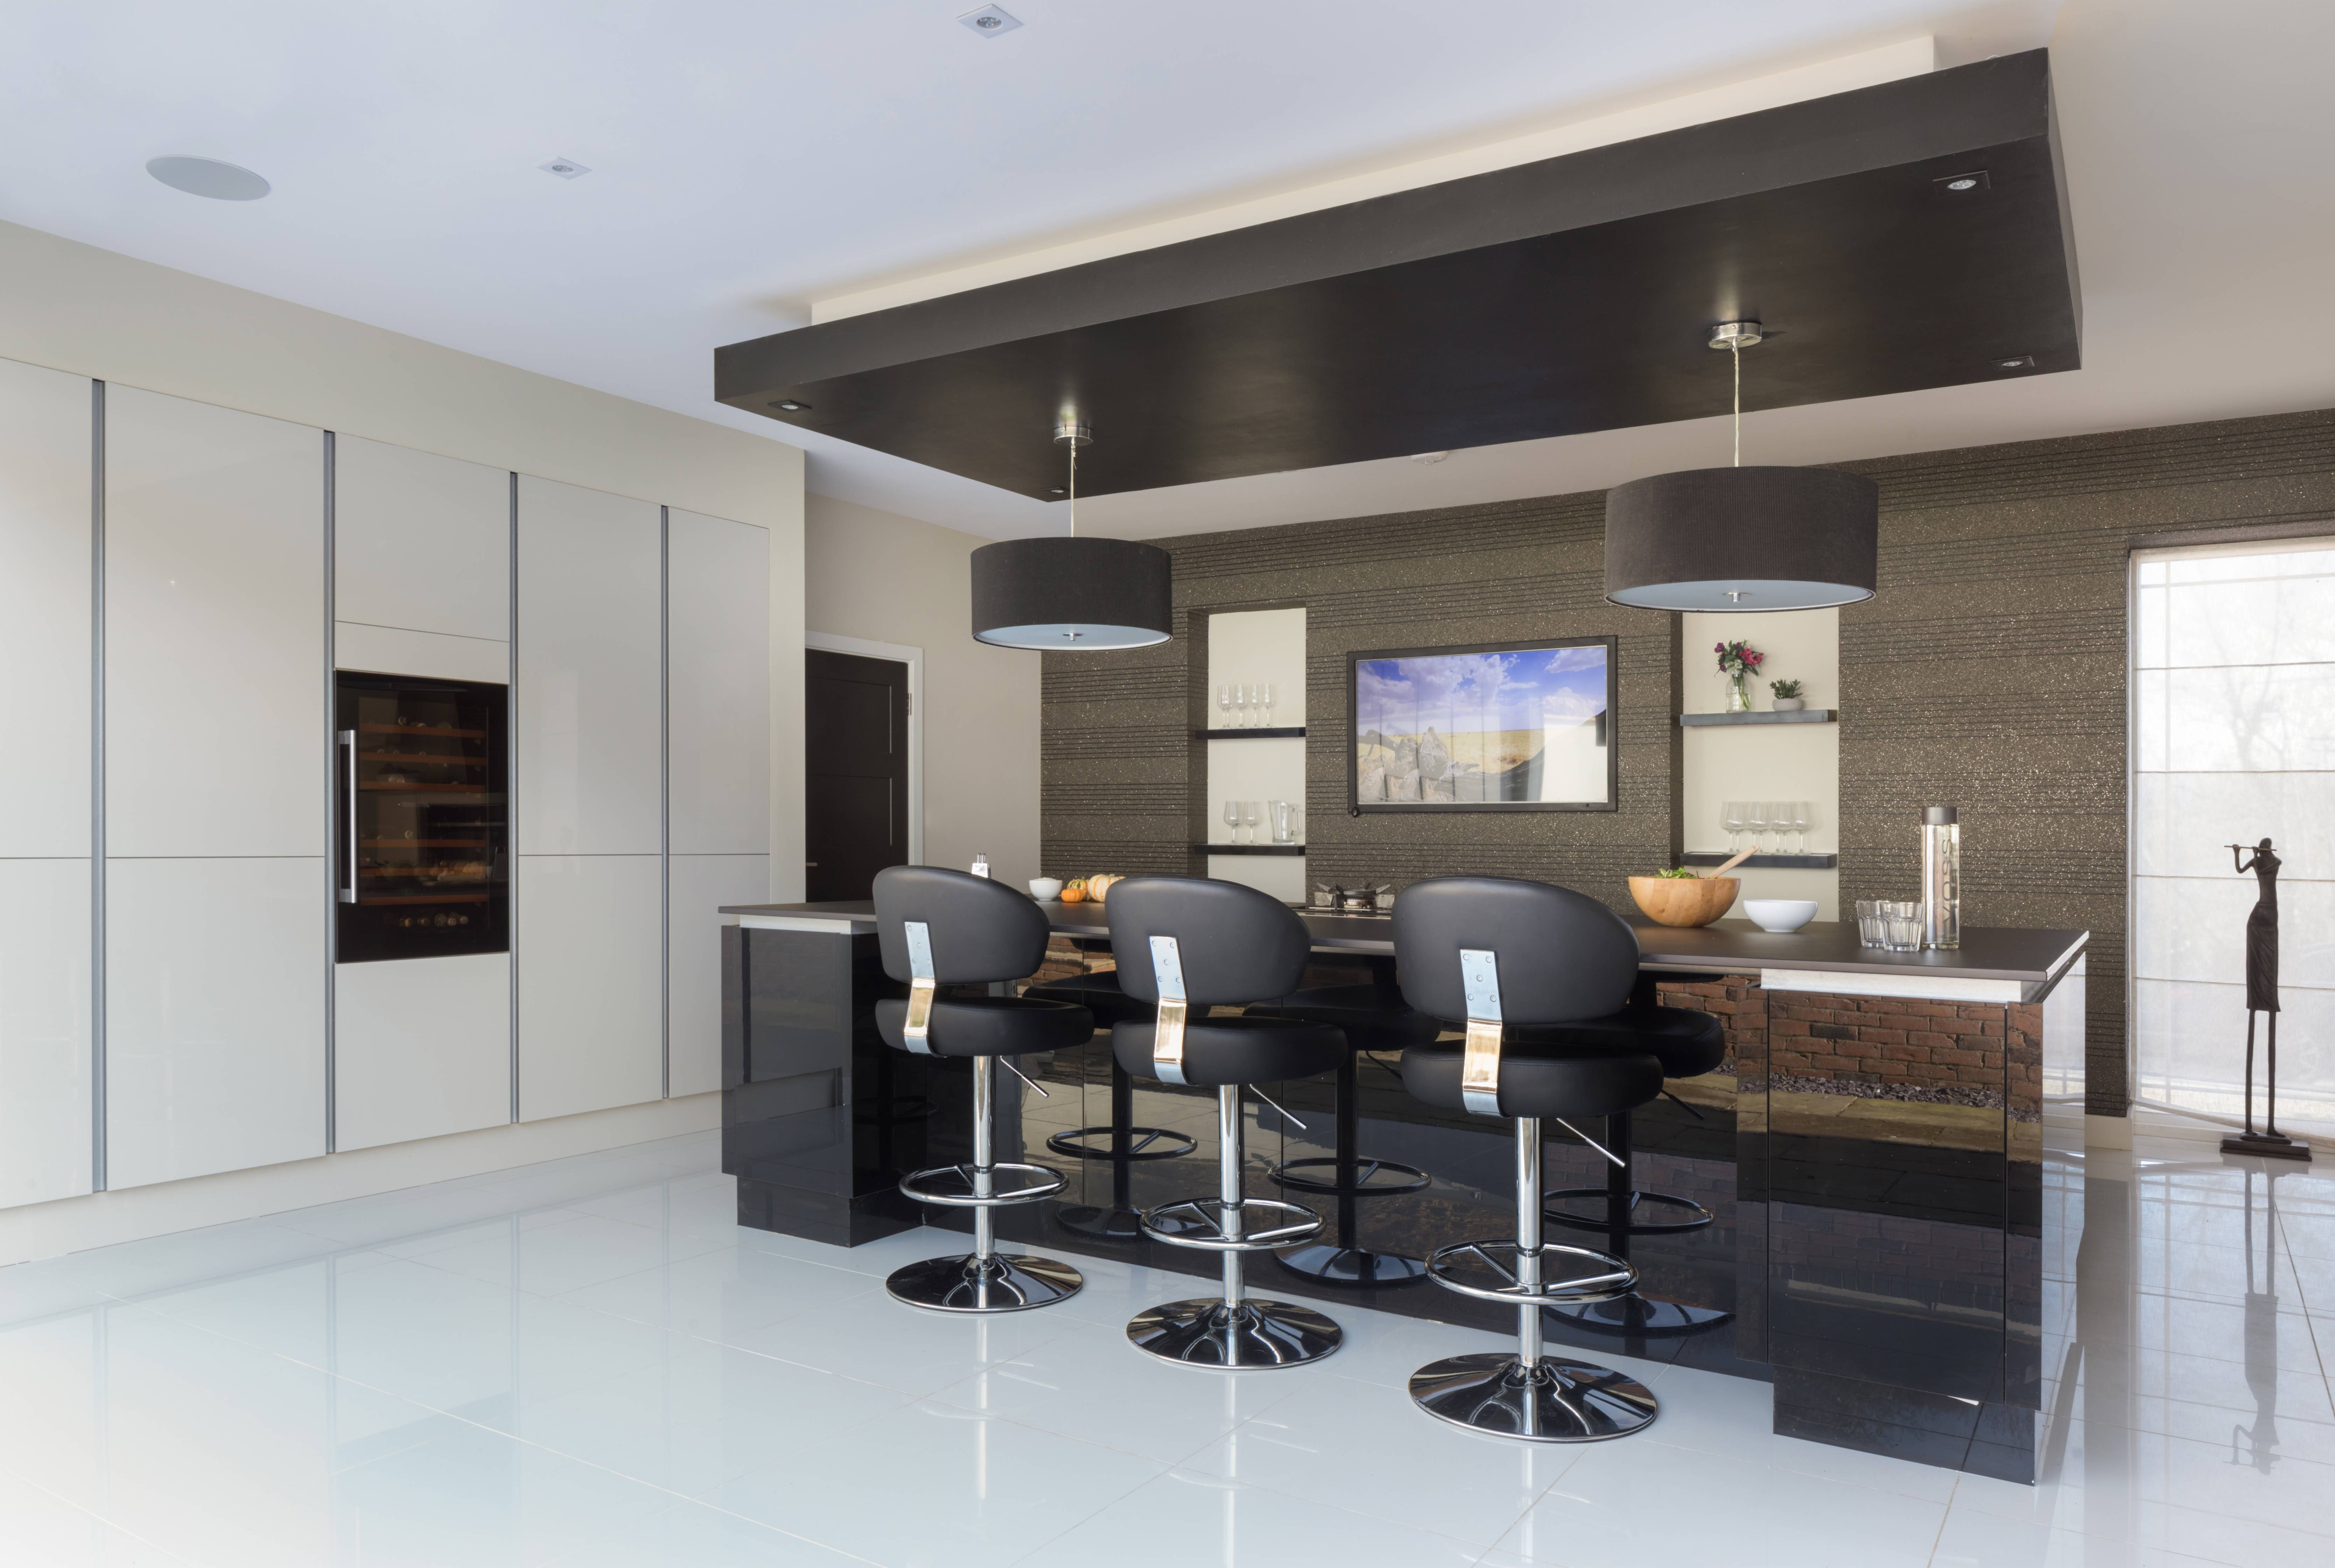 This Is Modern Sleek Kitchen Design The Mixture Of White Black And Dark Grey In A Gloss Finish Adds True Drama In The Kitchen We Especially Love The Large K